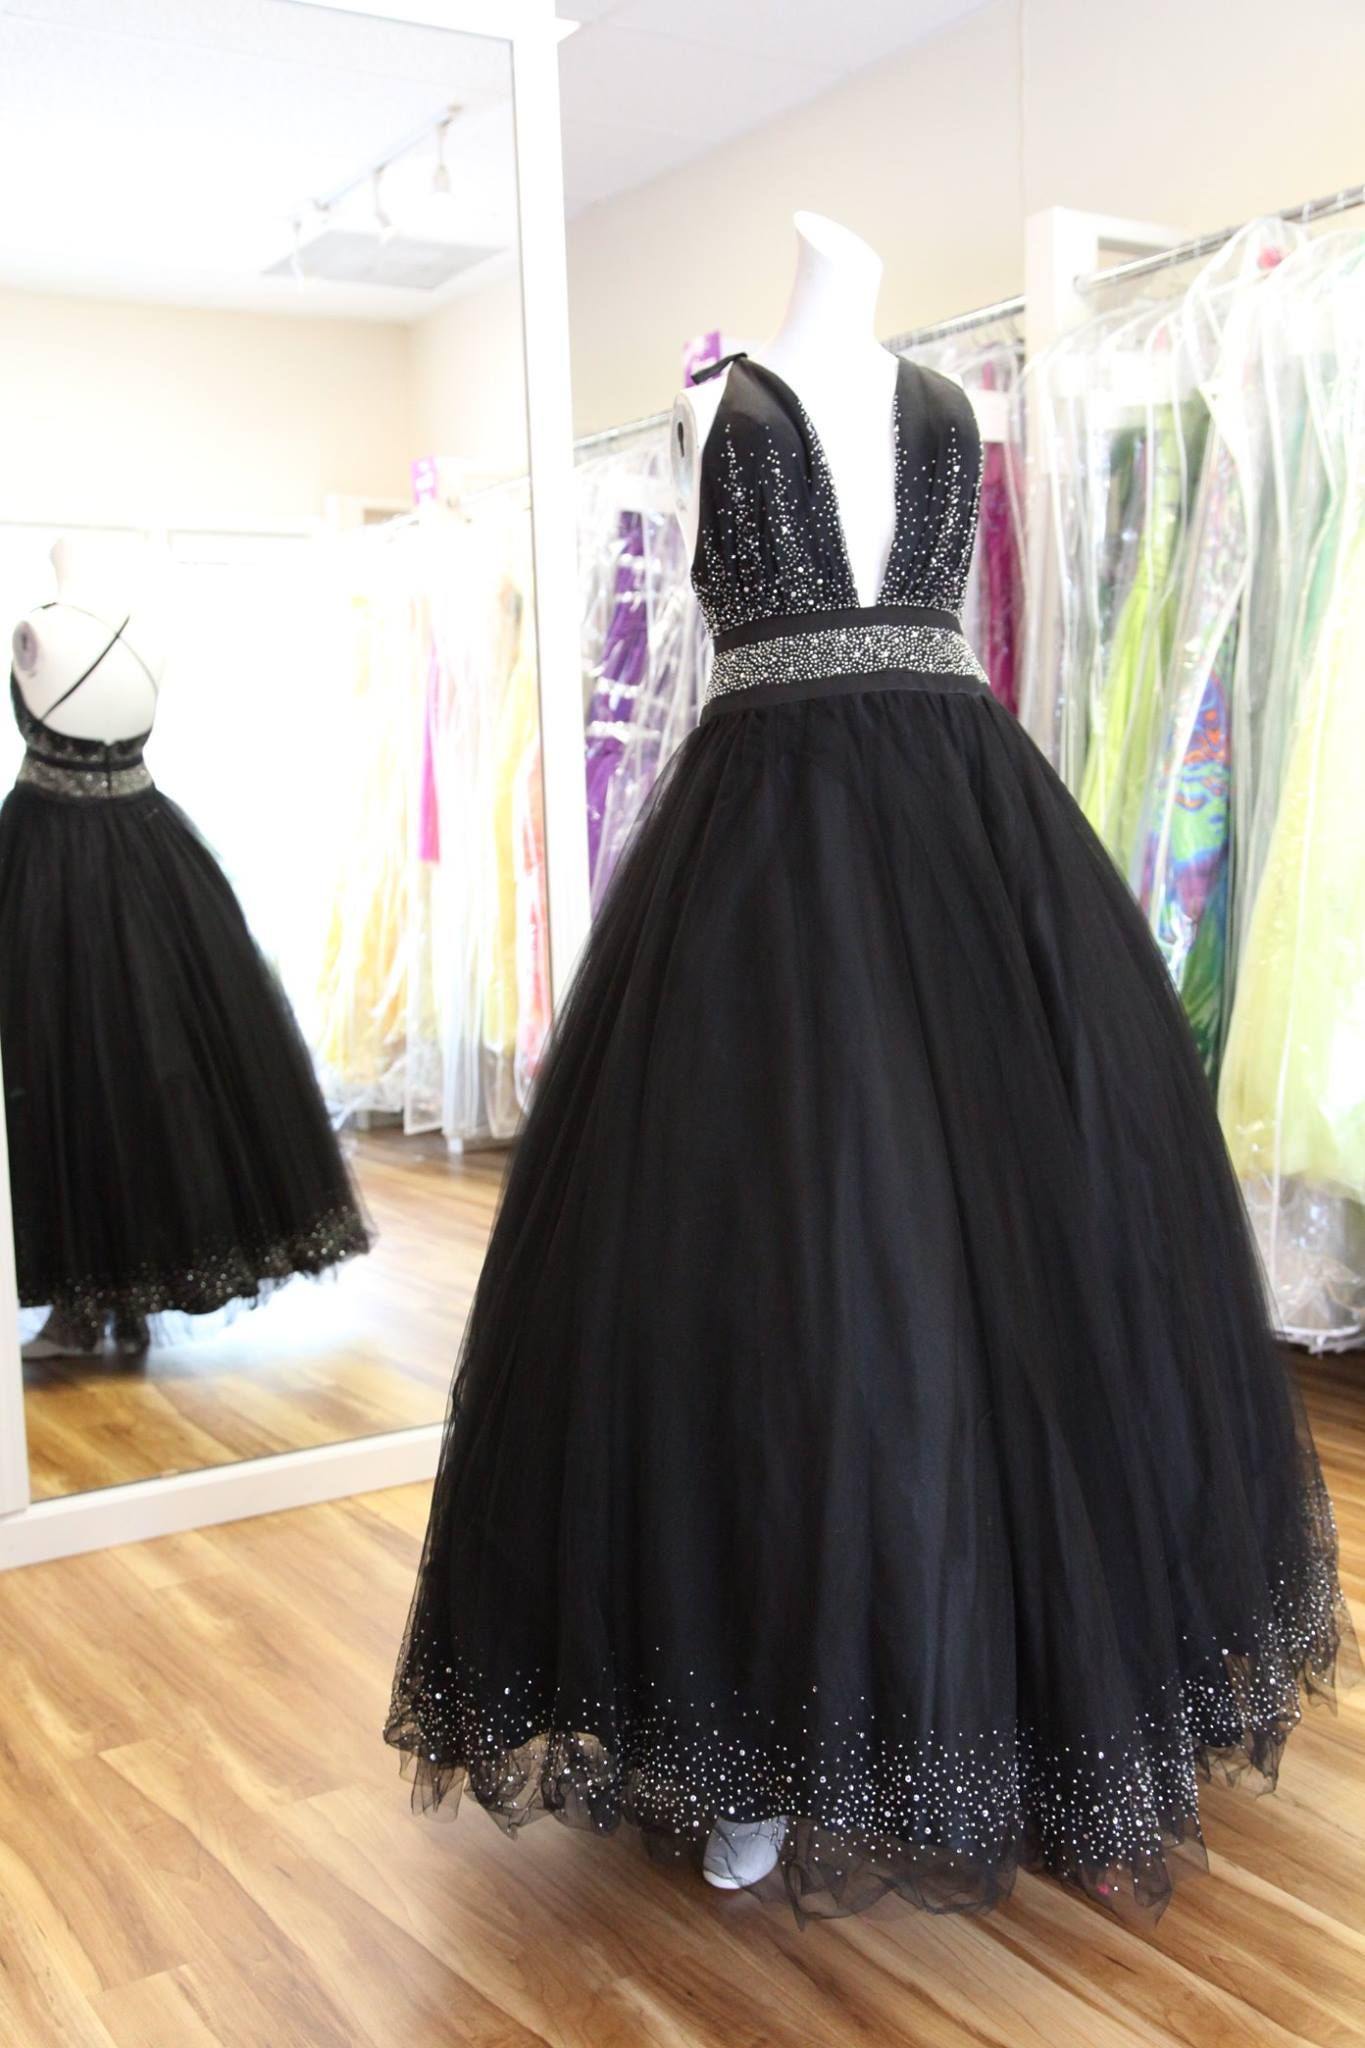 Item 10854182. Xcited. Retail 420. Style 3237. Size 6